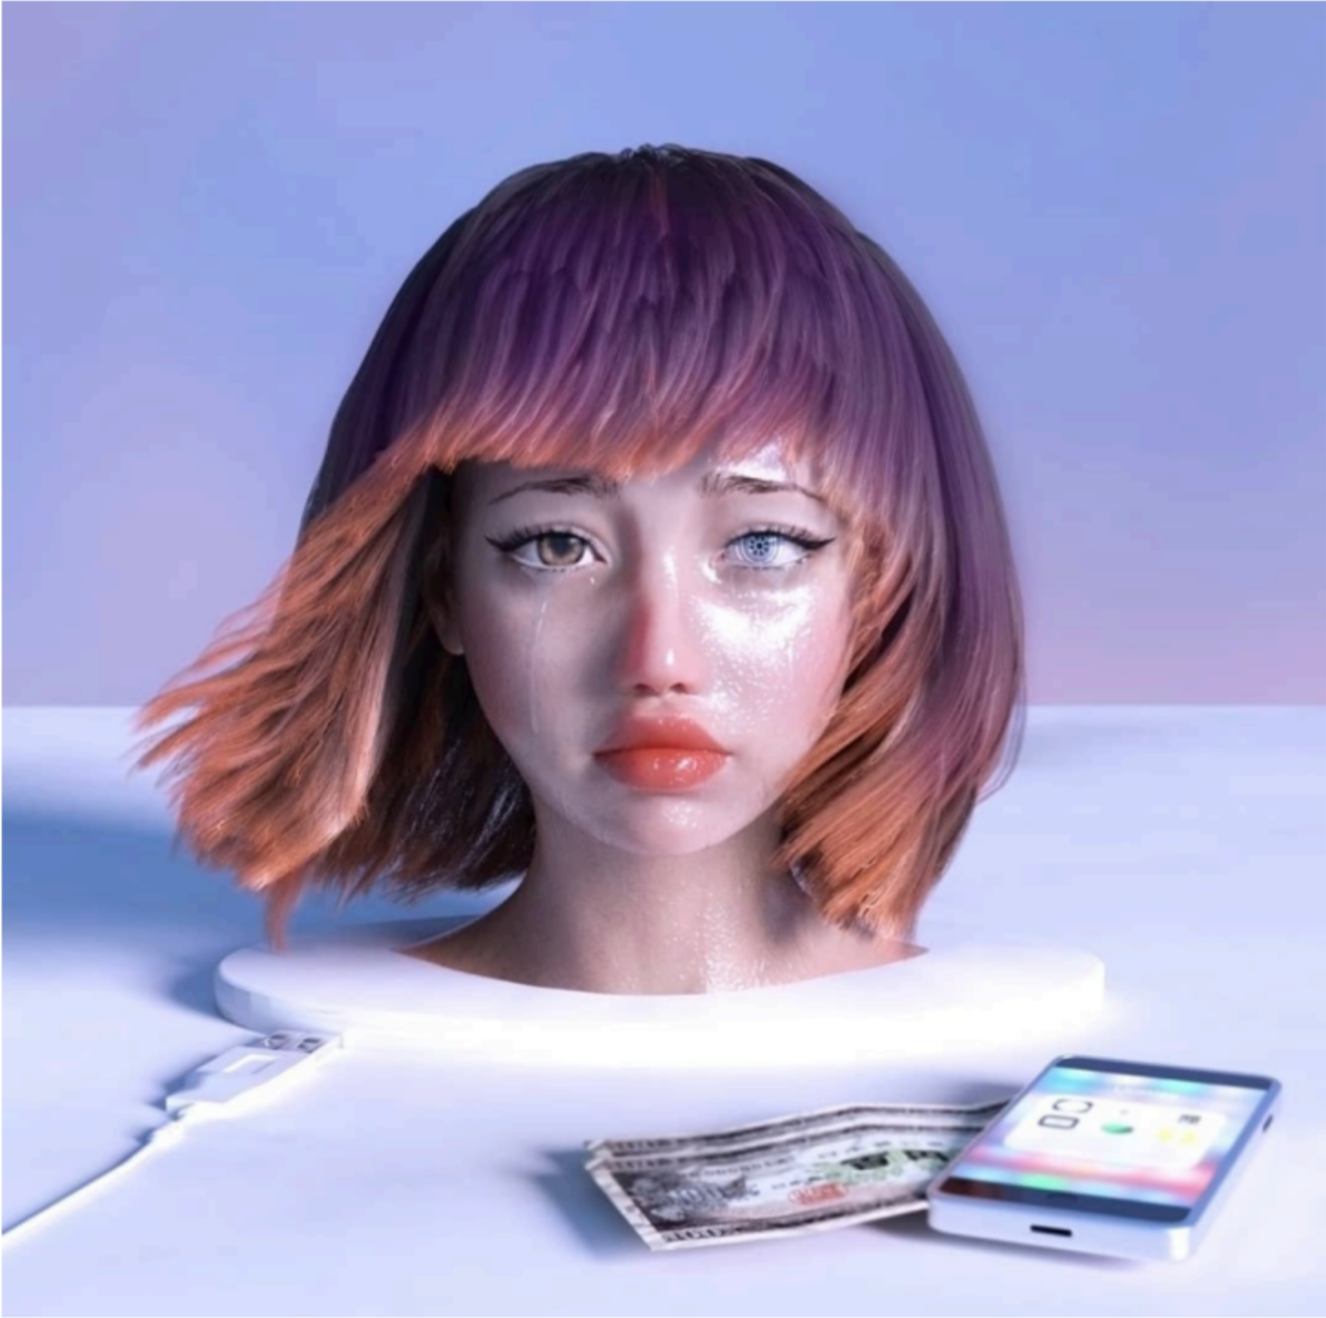 Digitised Portraiture on Instagram and theQuestions of Representation and Exploitation TheyPresent -